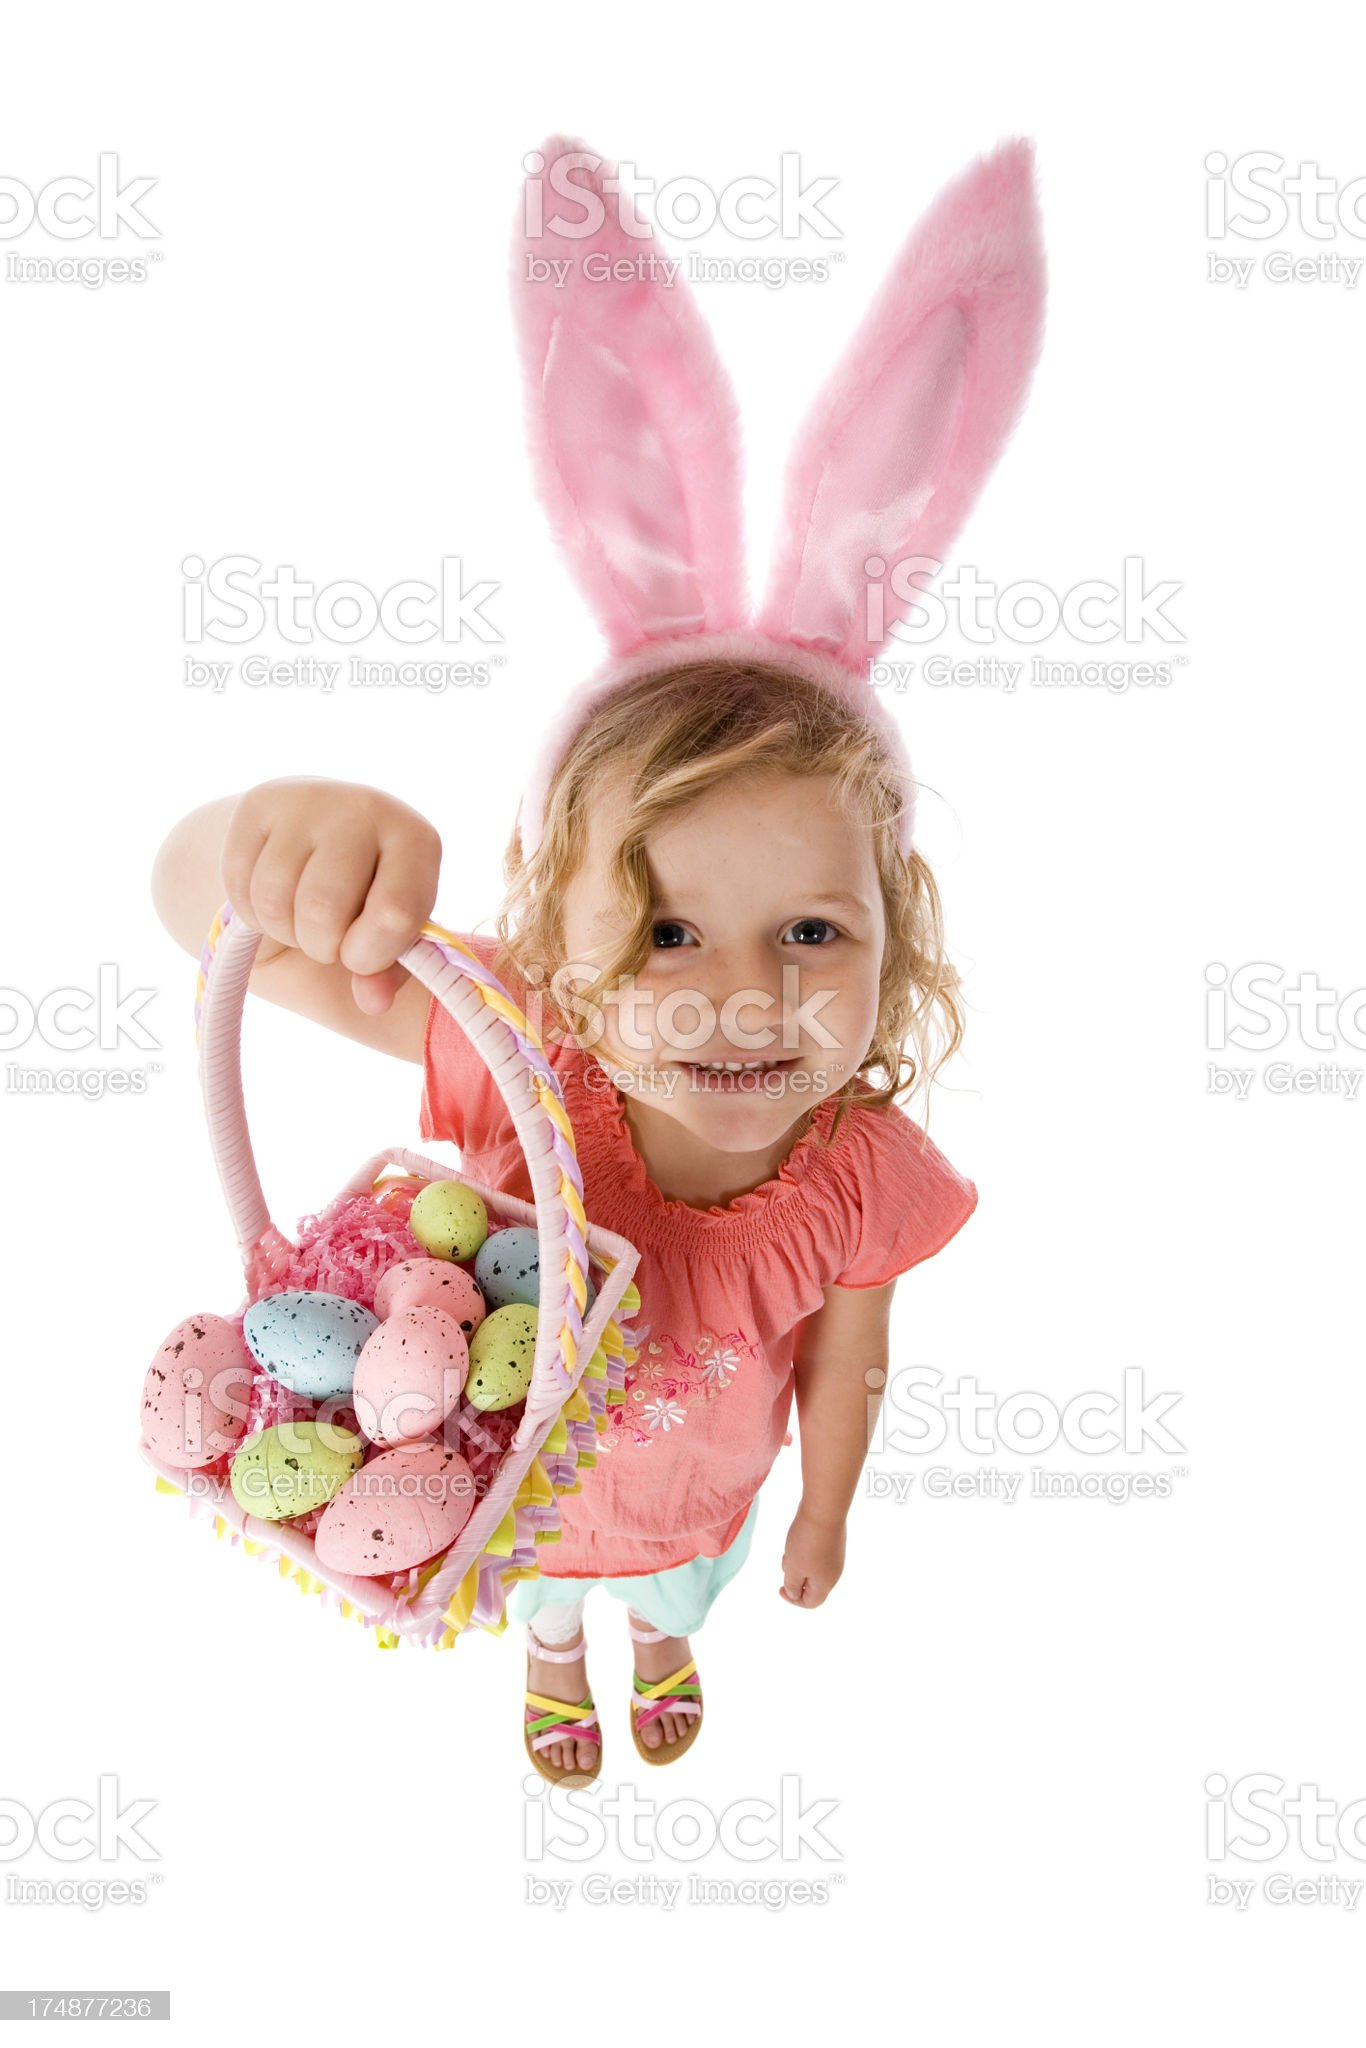 Cute Easter Bunny Girl royalty-free stock photo